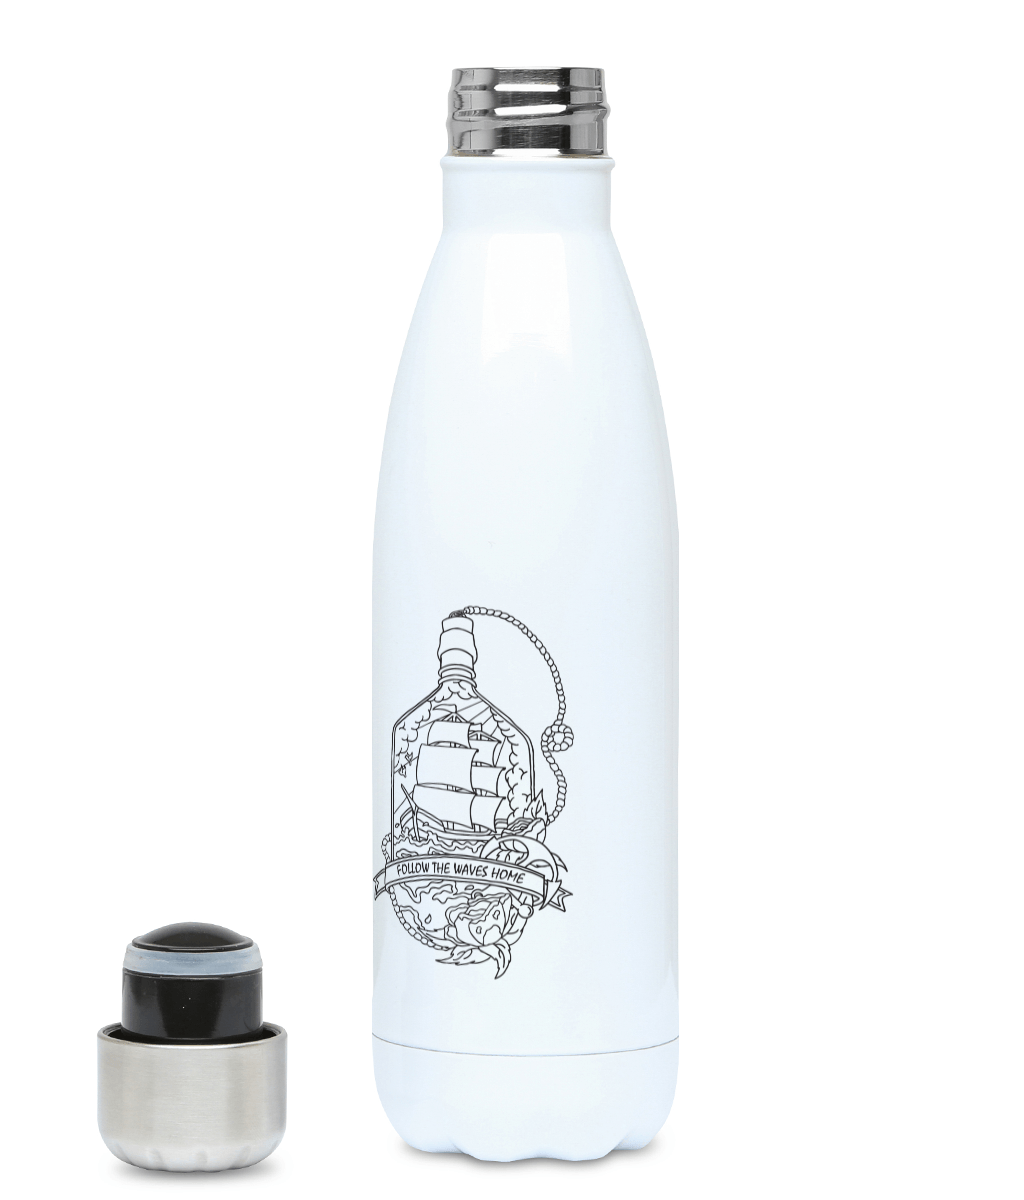 Follow The Waves Home - Plastic Free 500ml Water Bottle, Suggested Products, Pen and Ink Studios Adventure Clothing